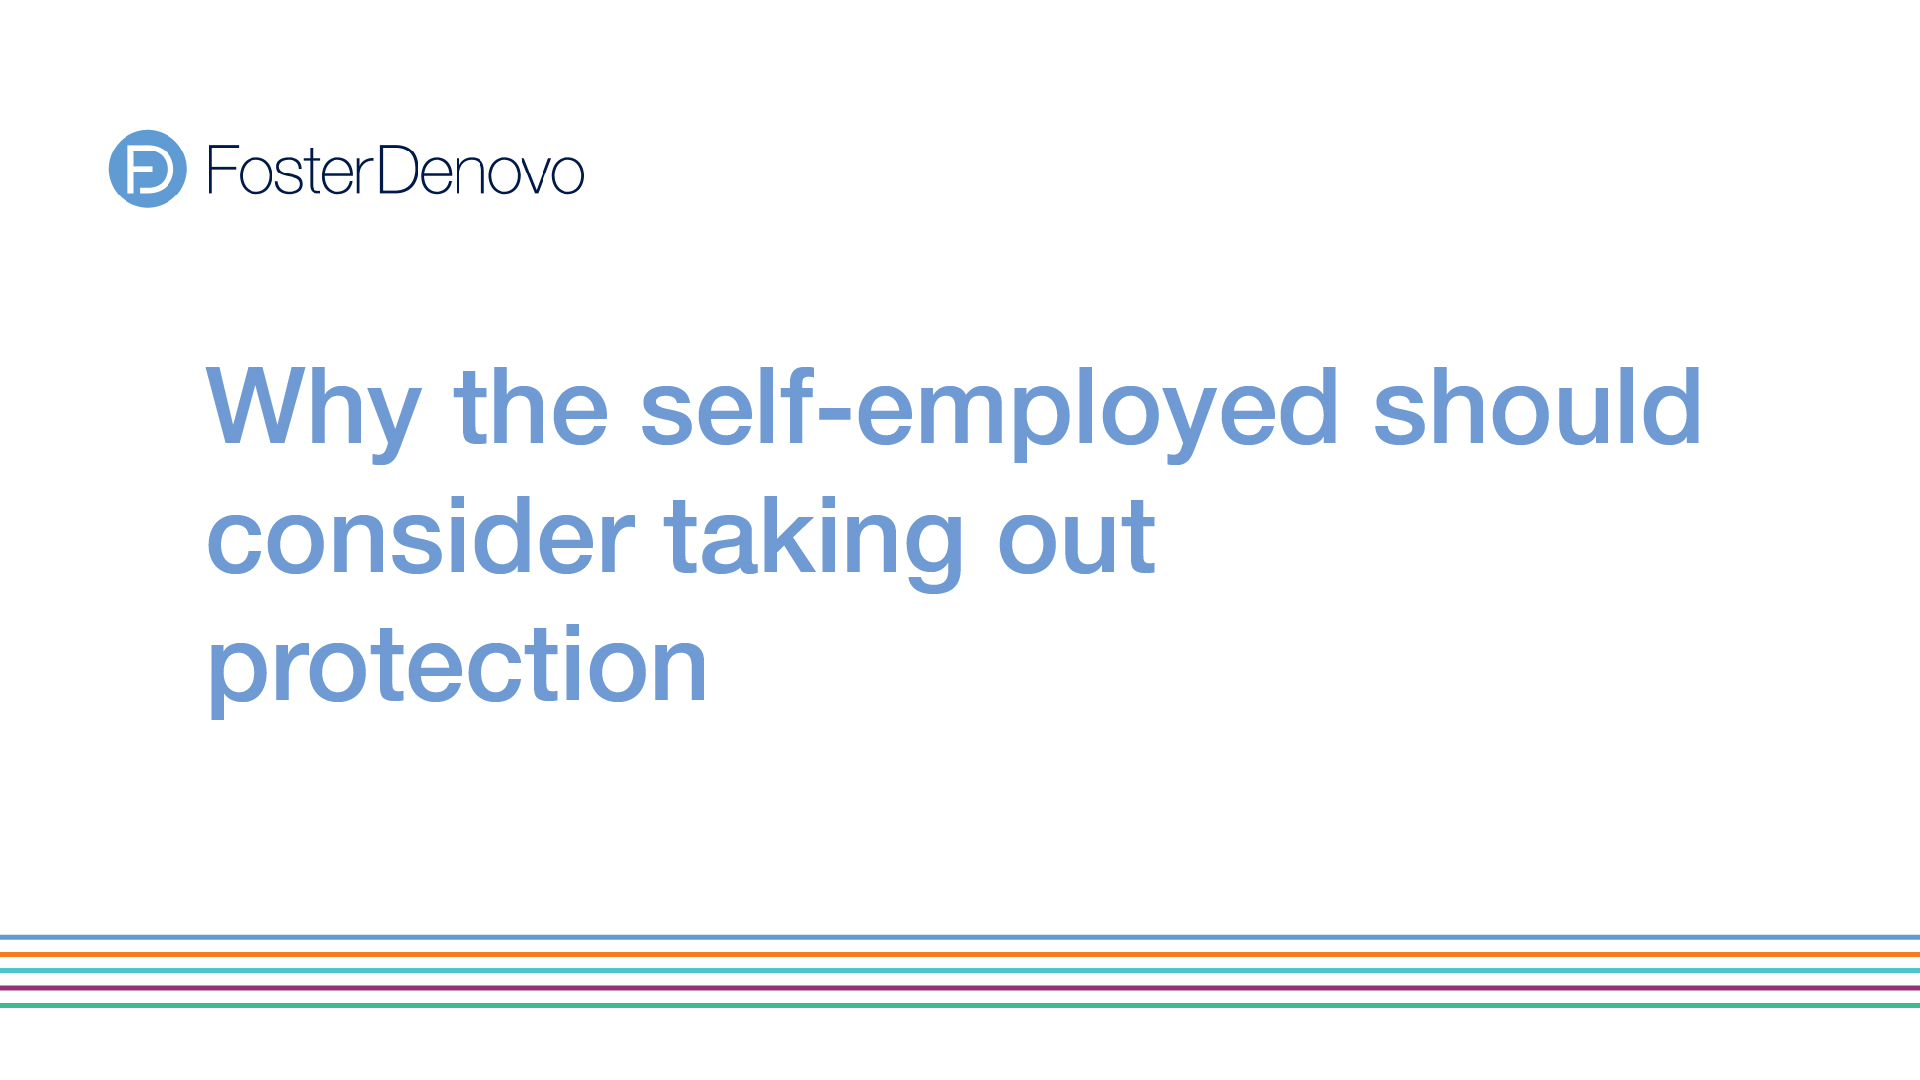 why self-employed should consider taking out protection